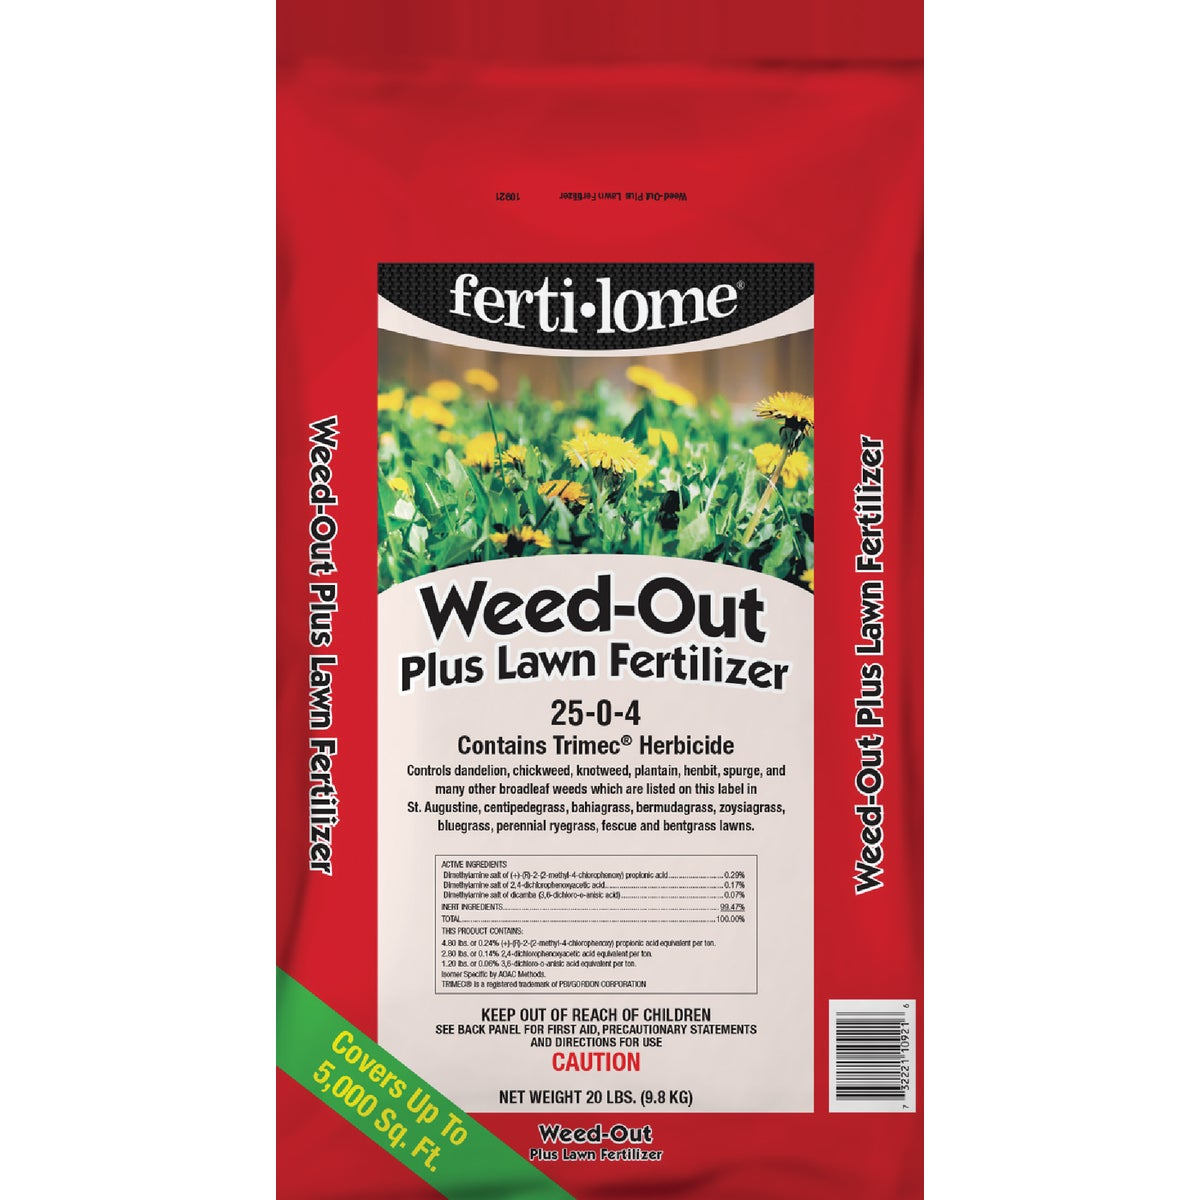 20LB LWN FERT/WEED-OUT - 10921 by Vpg Fertilome